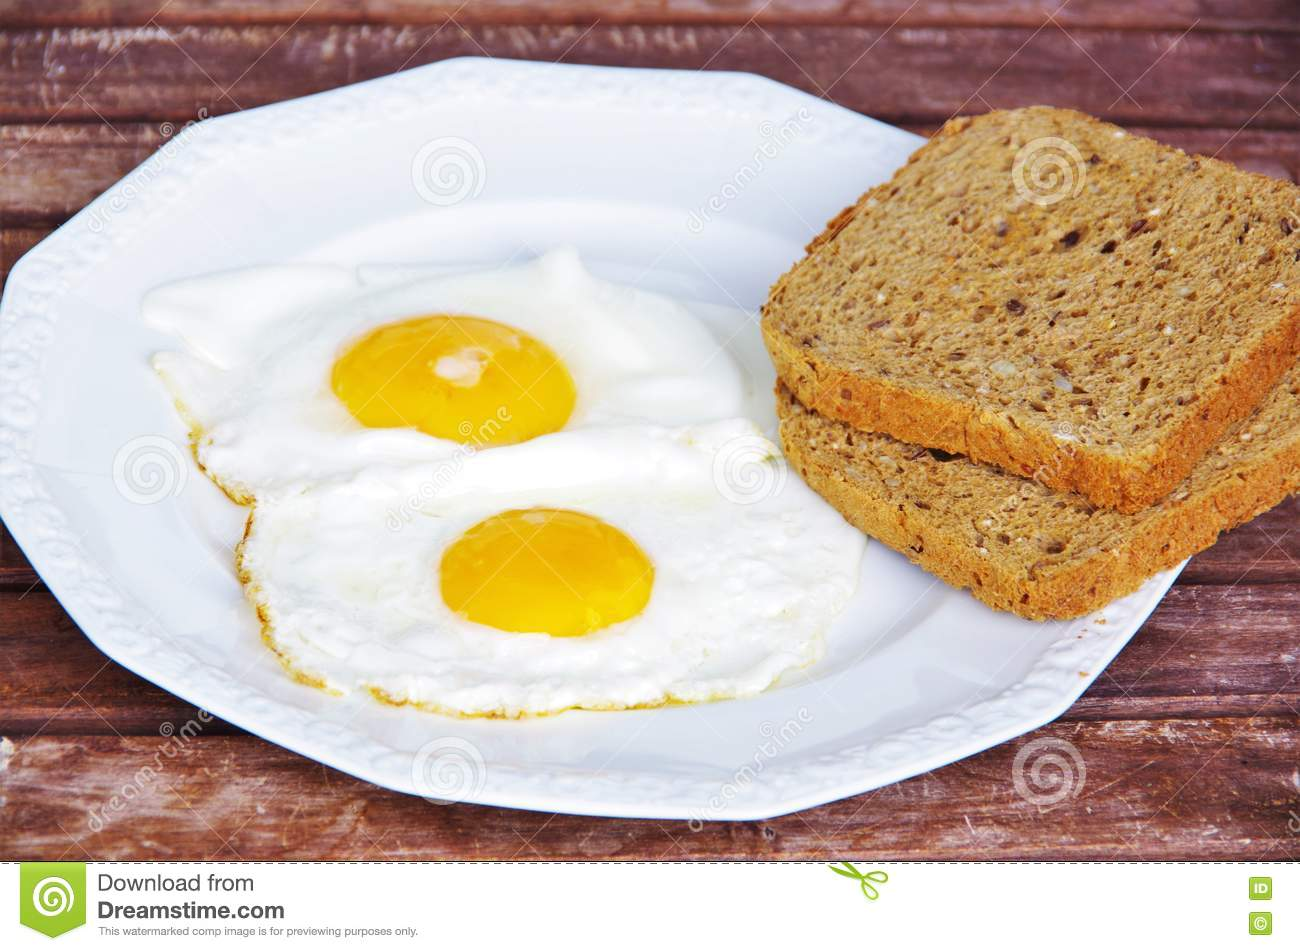 Fried egg on plate stock vector. Illustration of meal ...  |Fried Eggs On A Plate